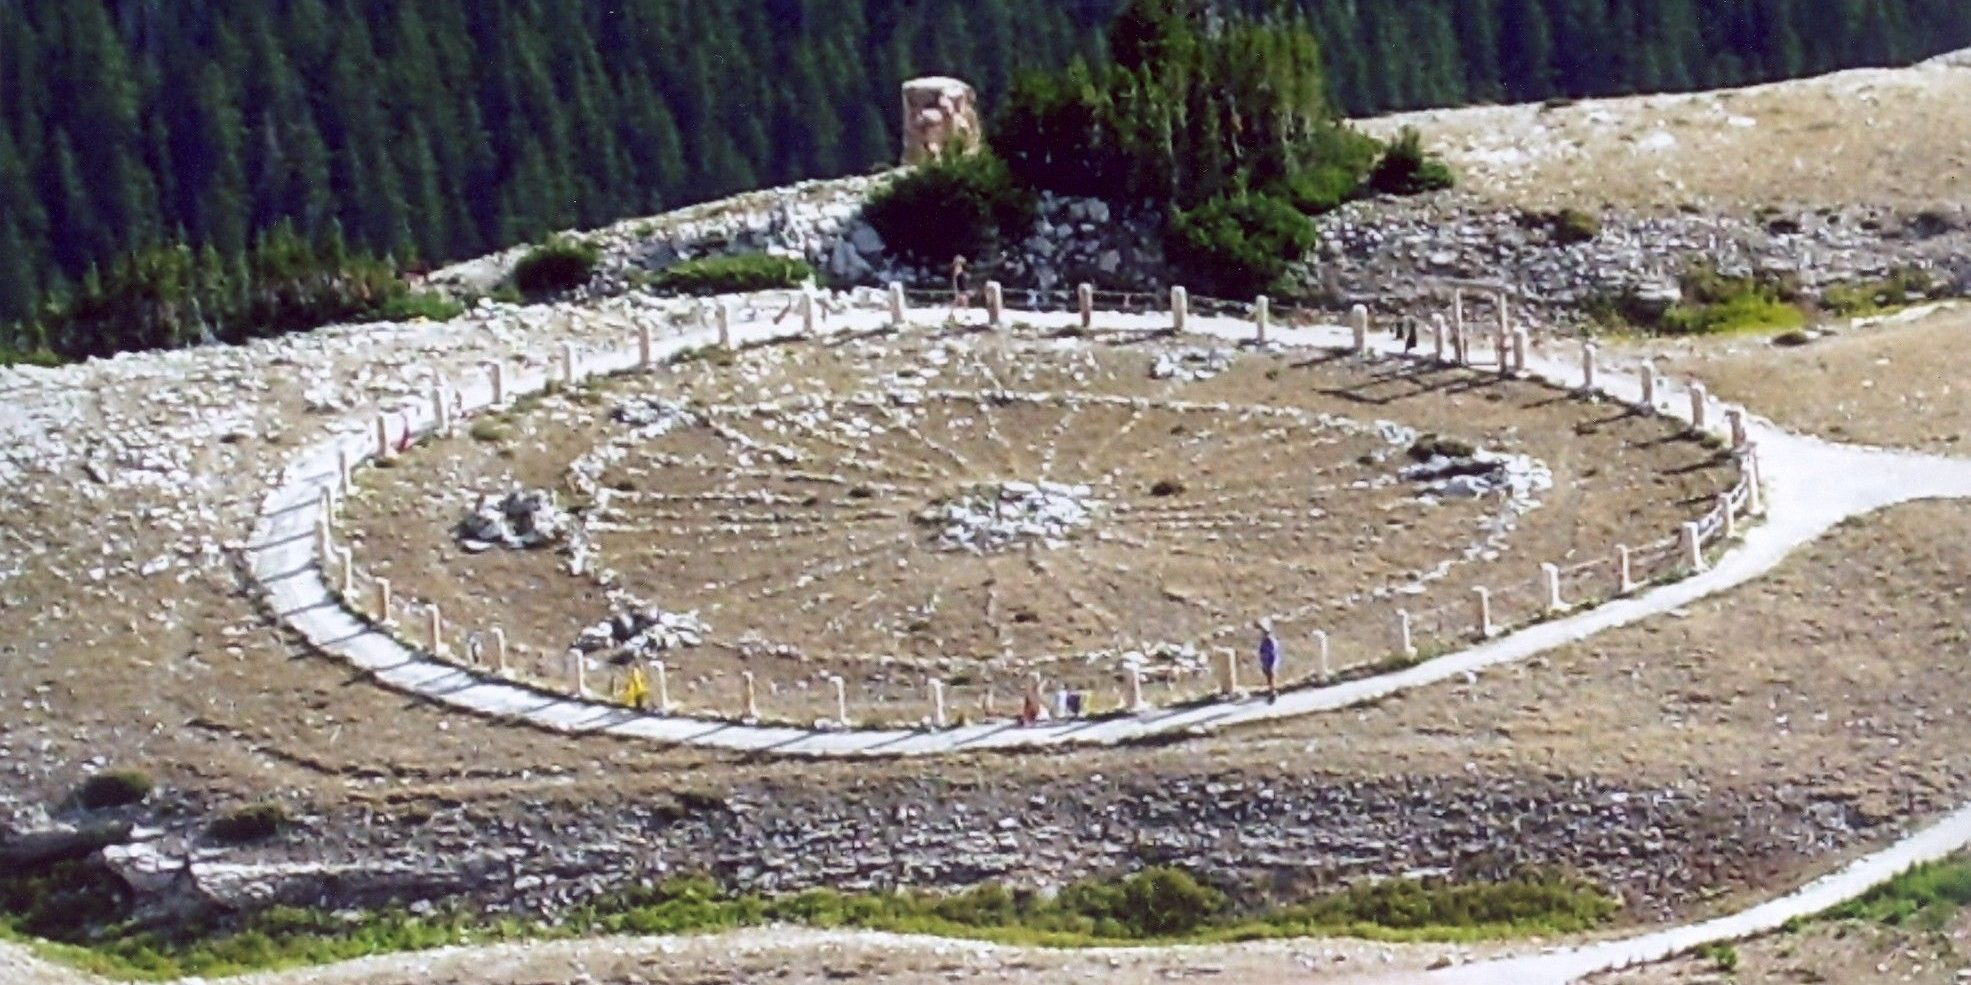 Archaeoastronomy:  Between the Heavens and Earth